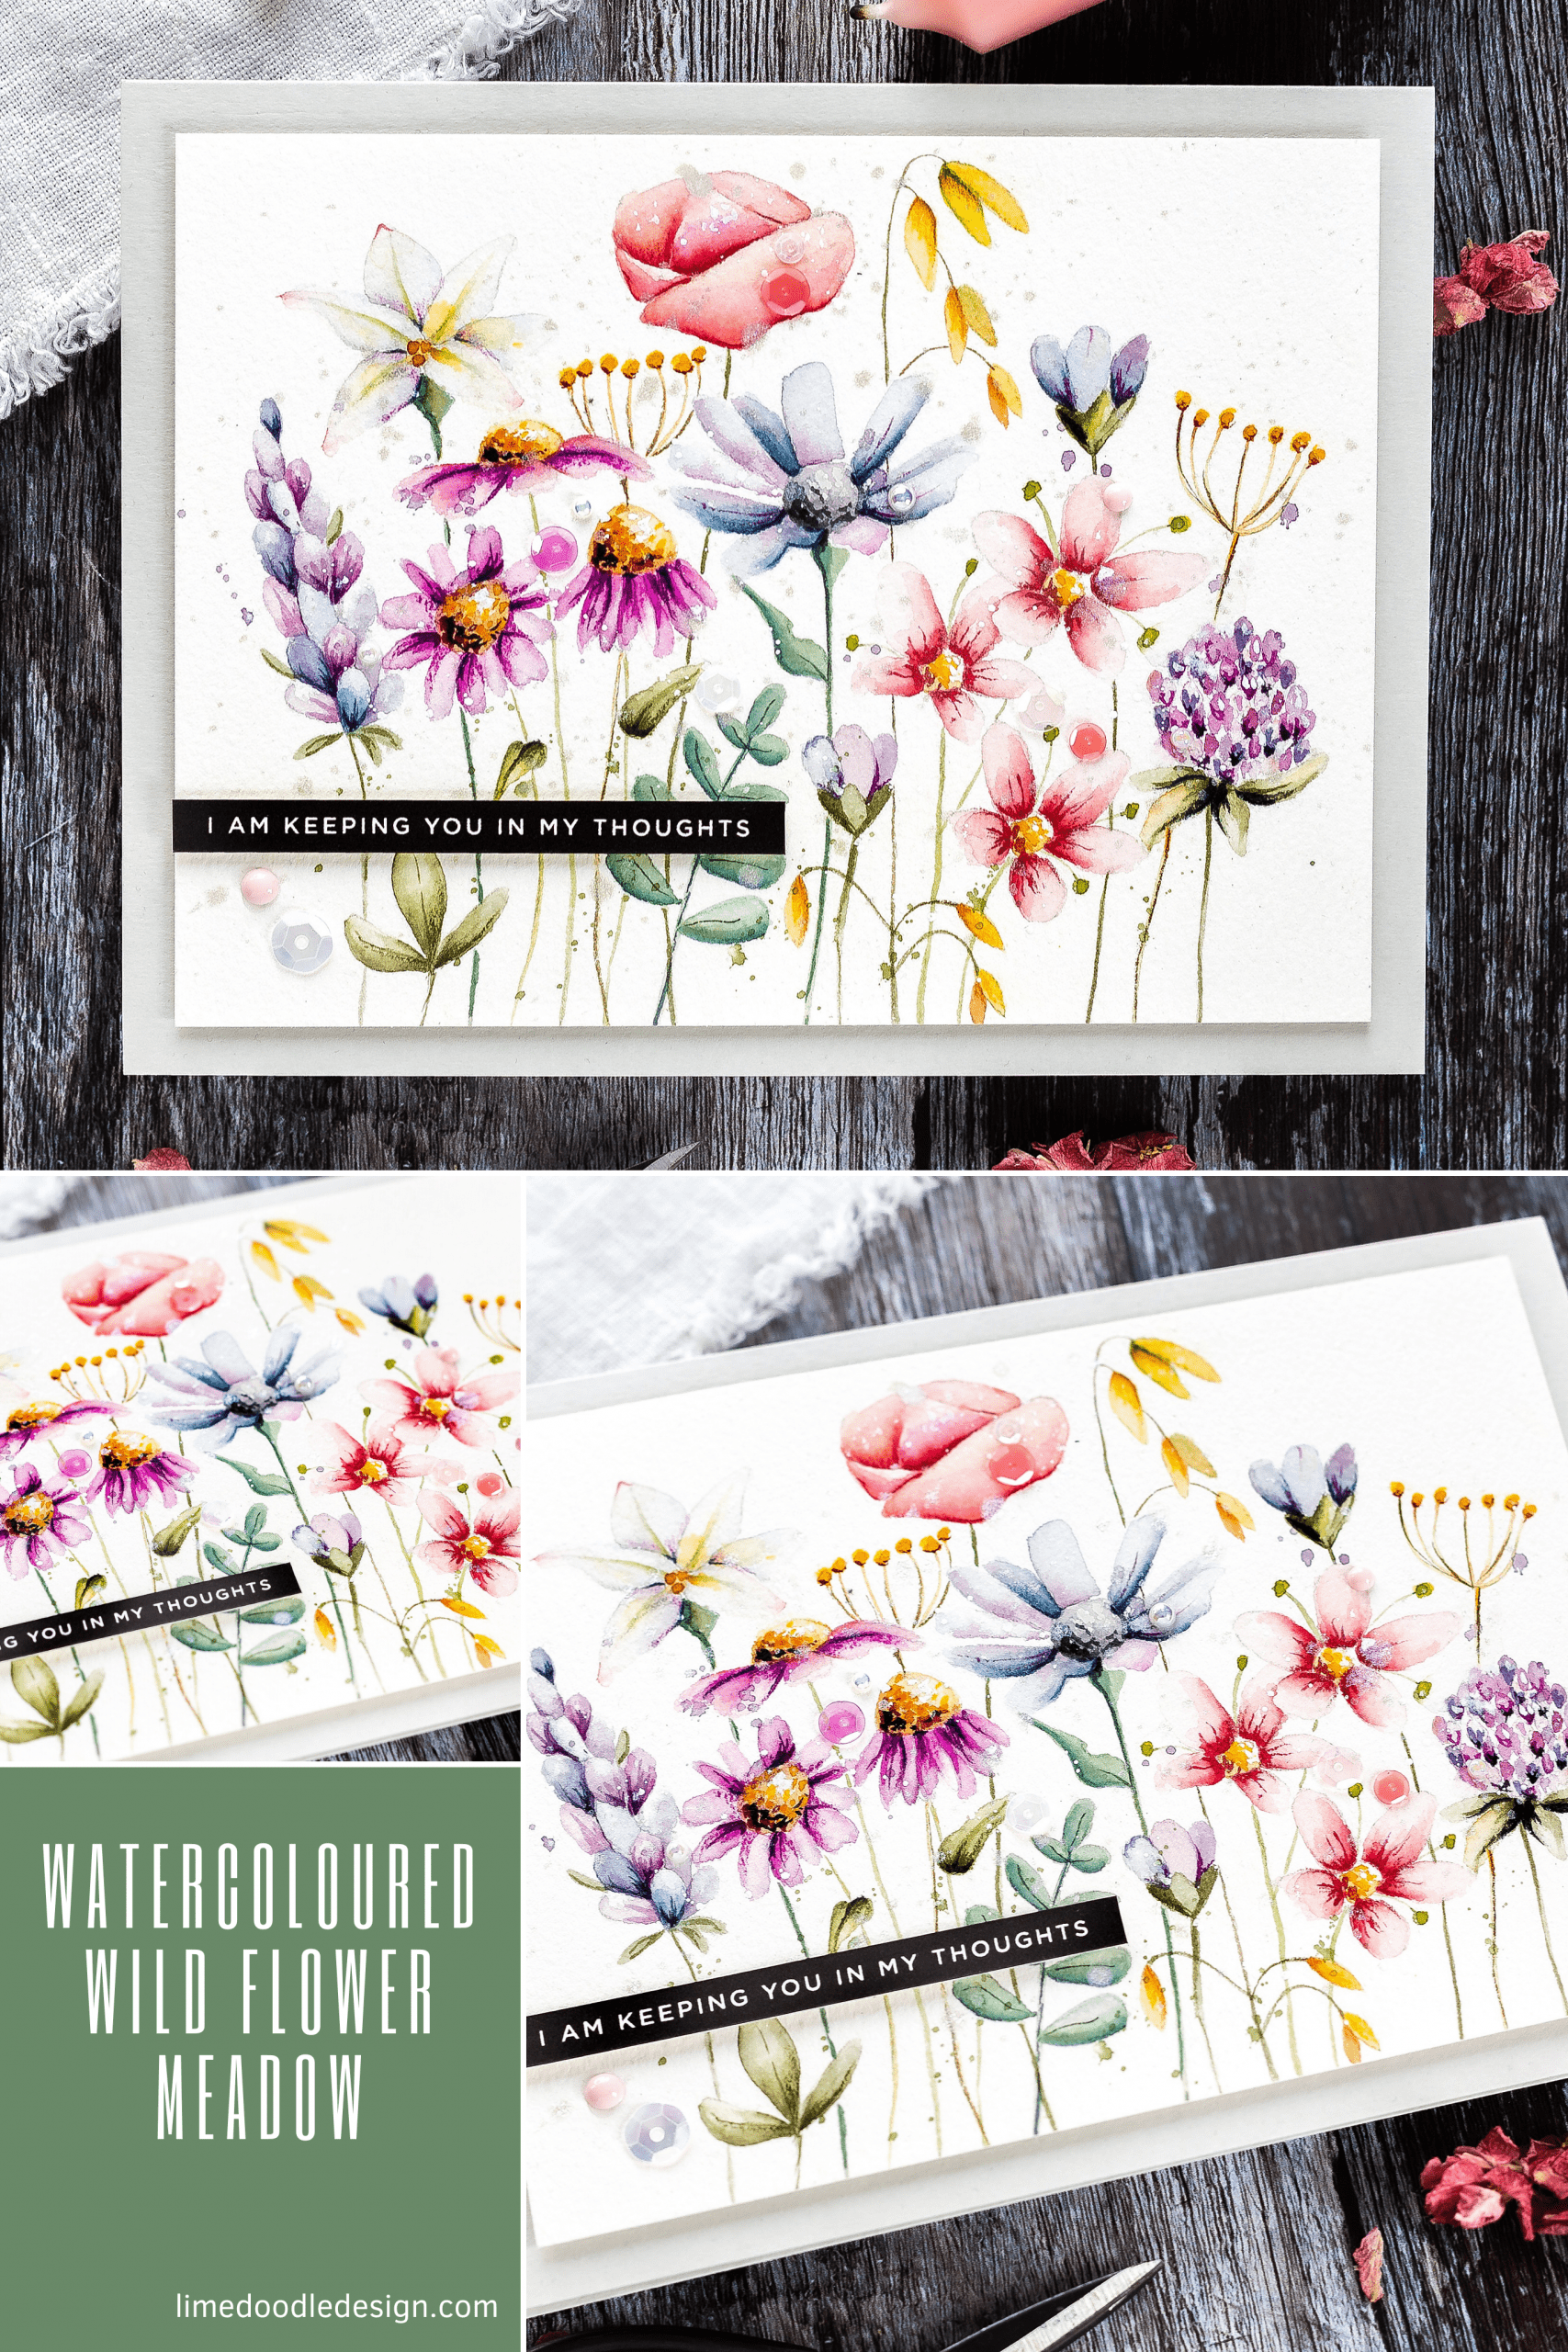 Idyllic watercoloured meadow tutorial handmade card by Debby Hughes using supplies from Simon Says Stamp #watercolor #homemade